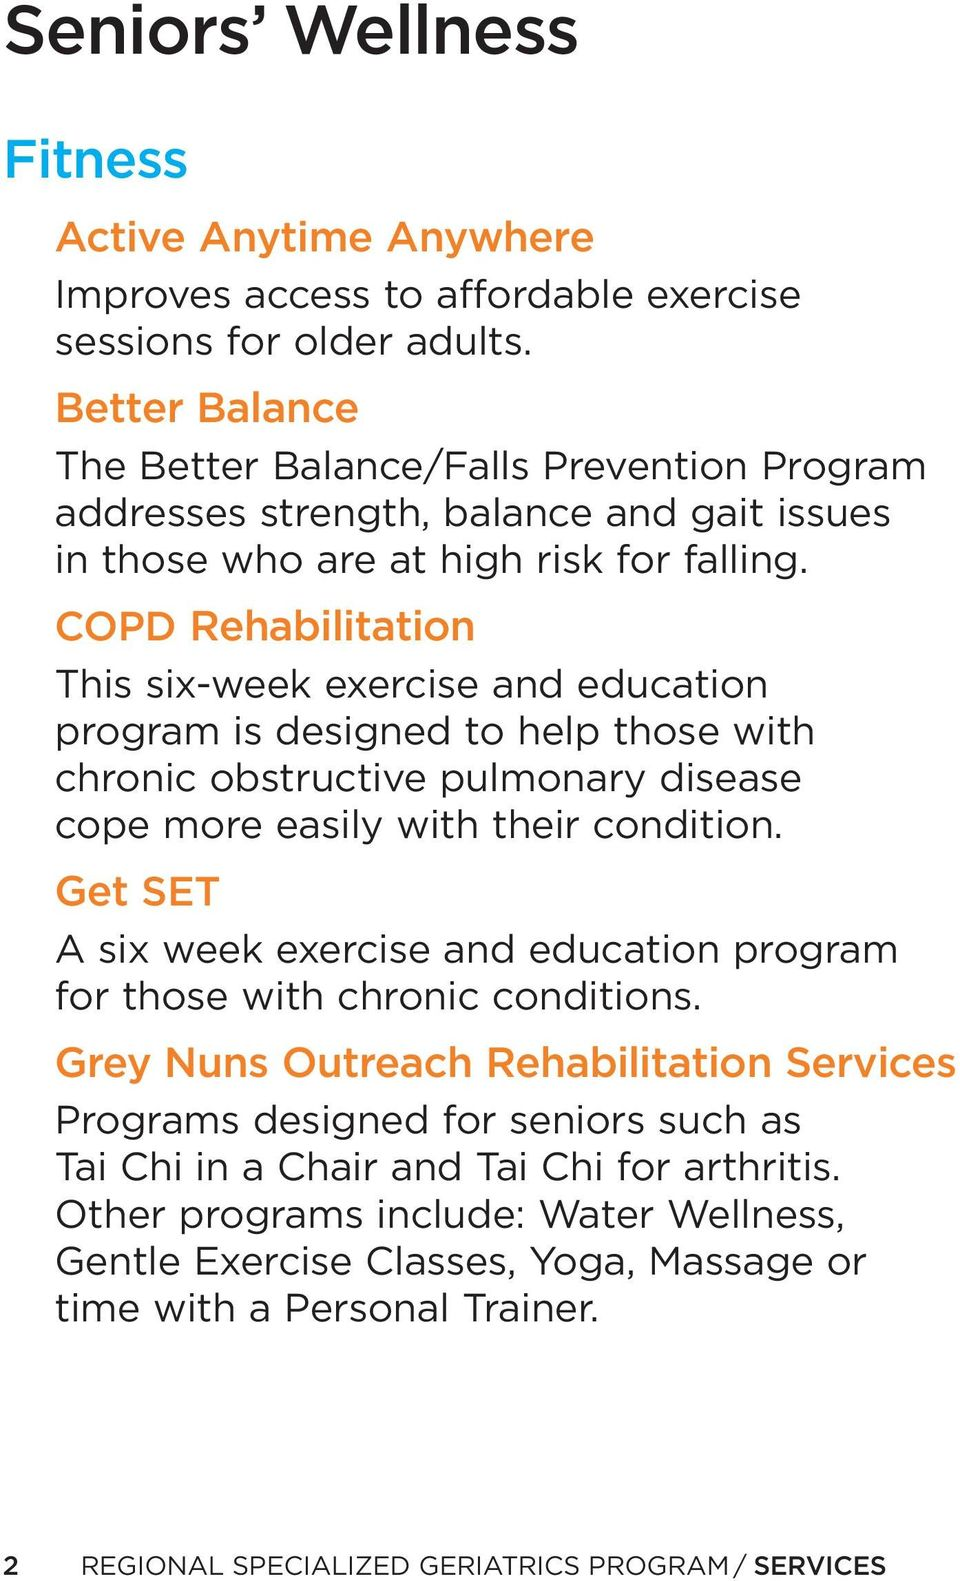 COPD Rehabilitation This six-week exercise and education program is designed to help those with chronic obstructive pulmonary disease cope more easily with their condition.